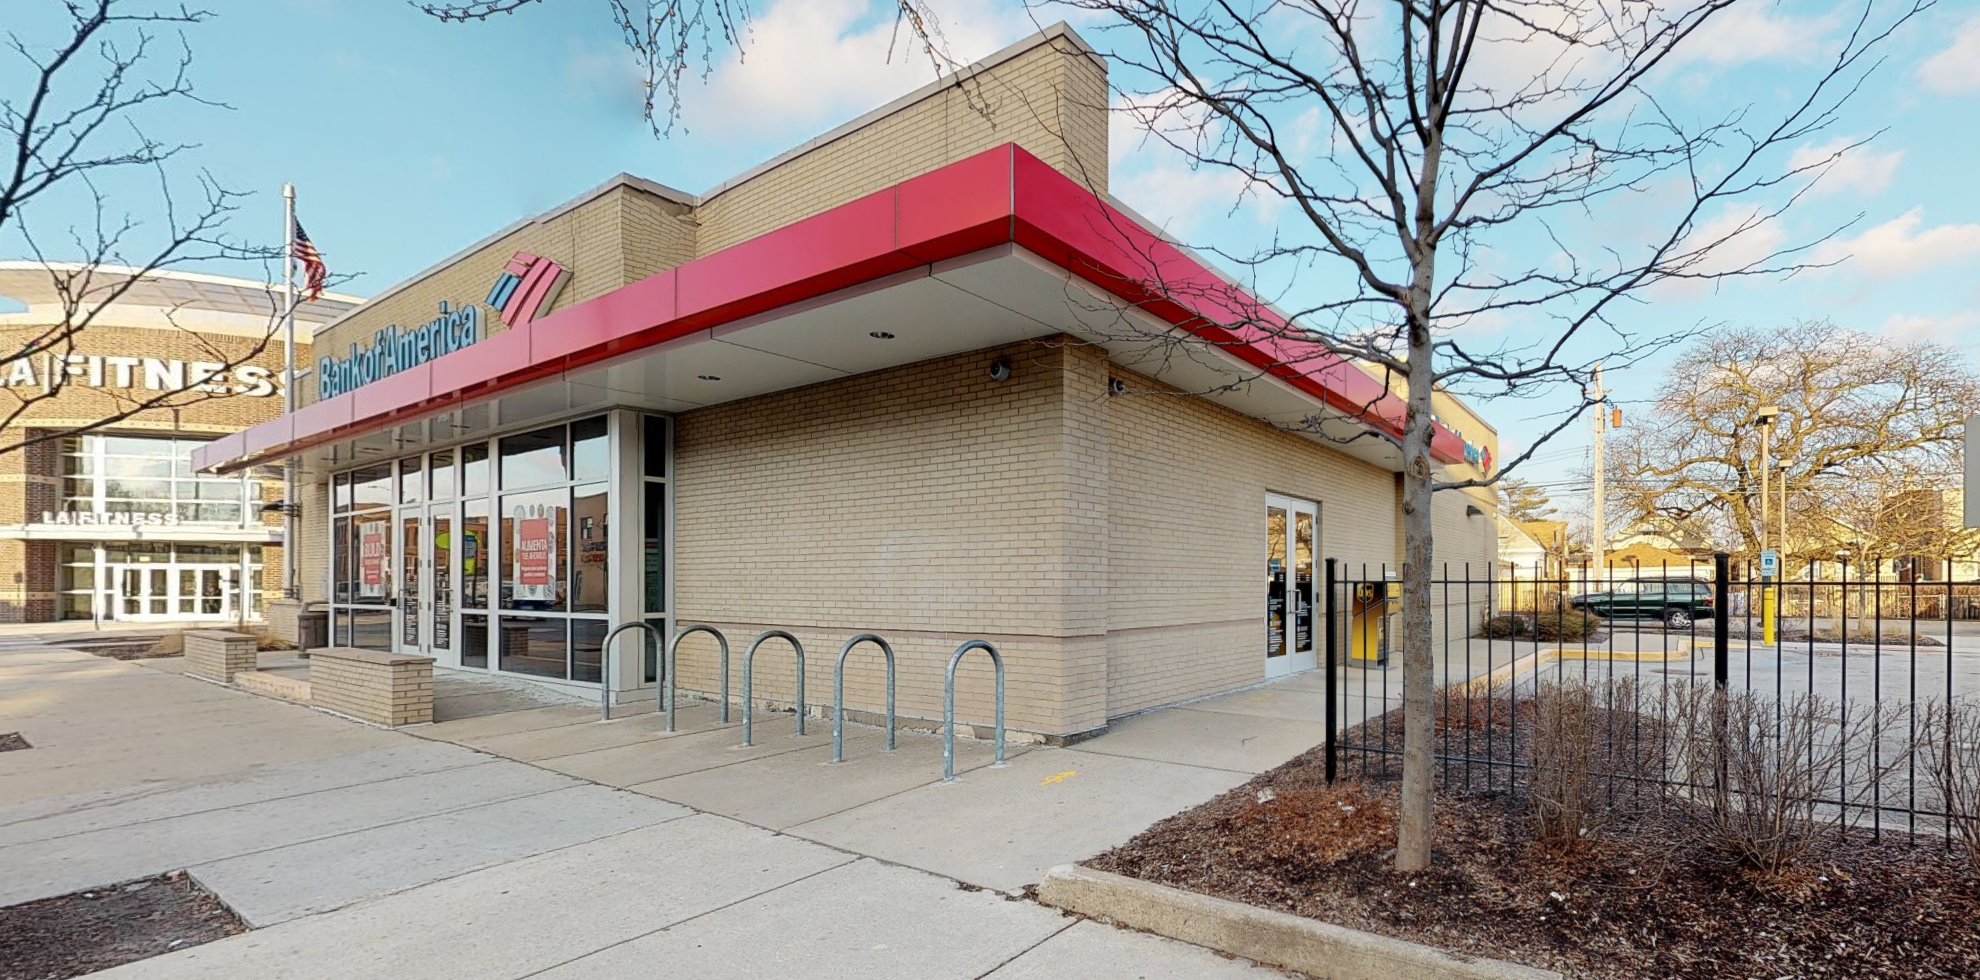 Bank of America financial center with drive-thru ATM | 5601 S Kedzie Ave, Chicago, IL 60629